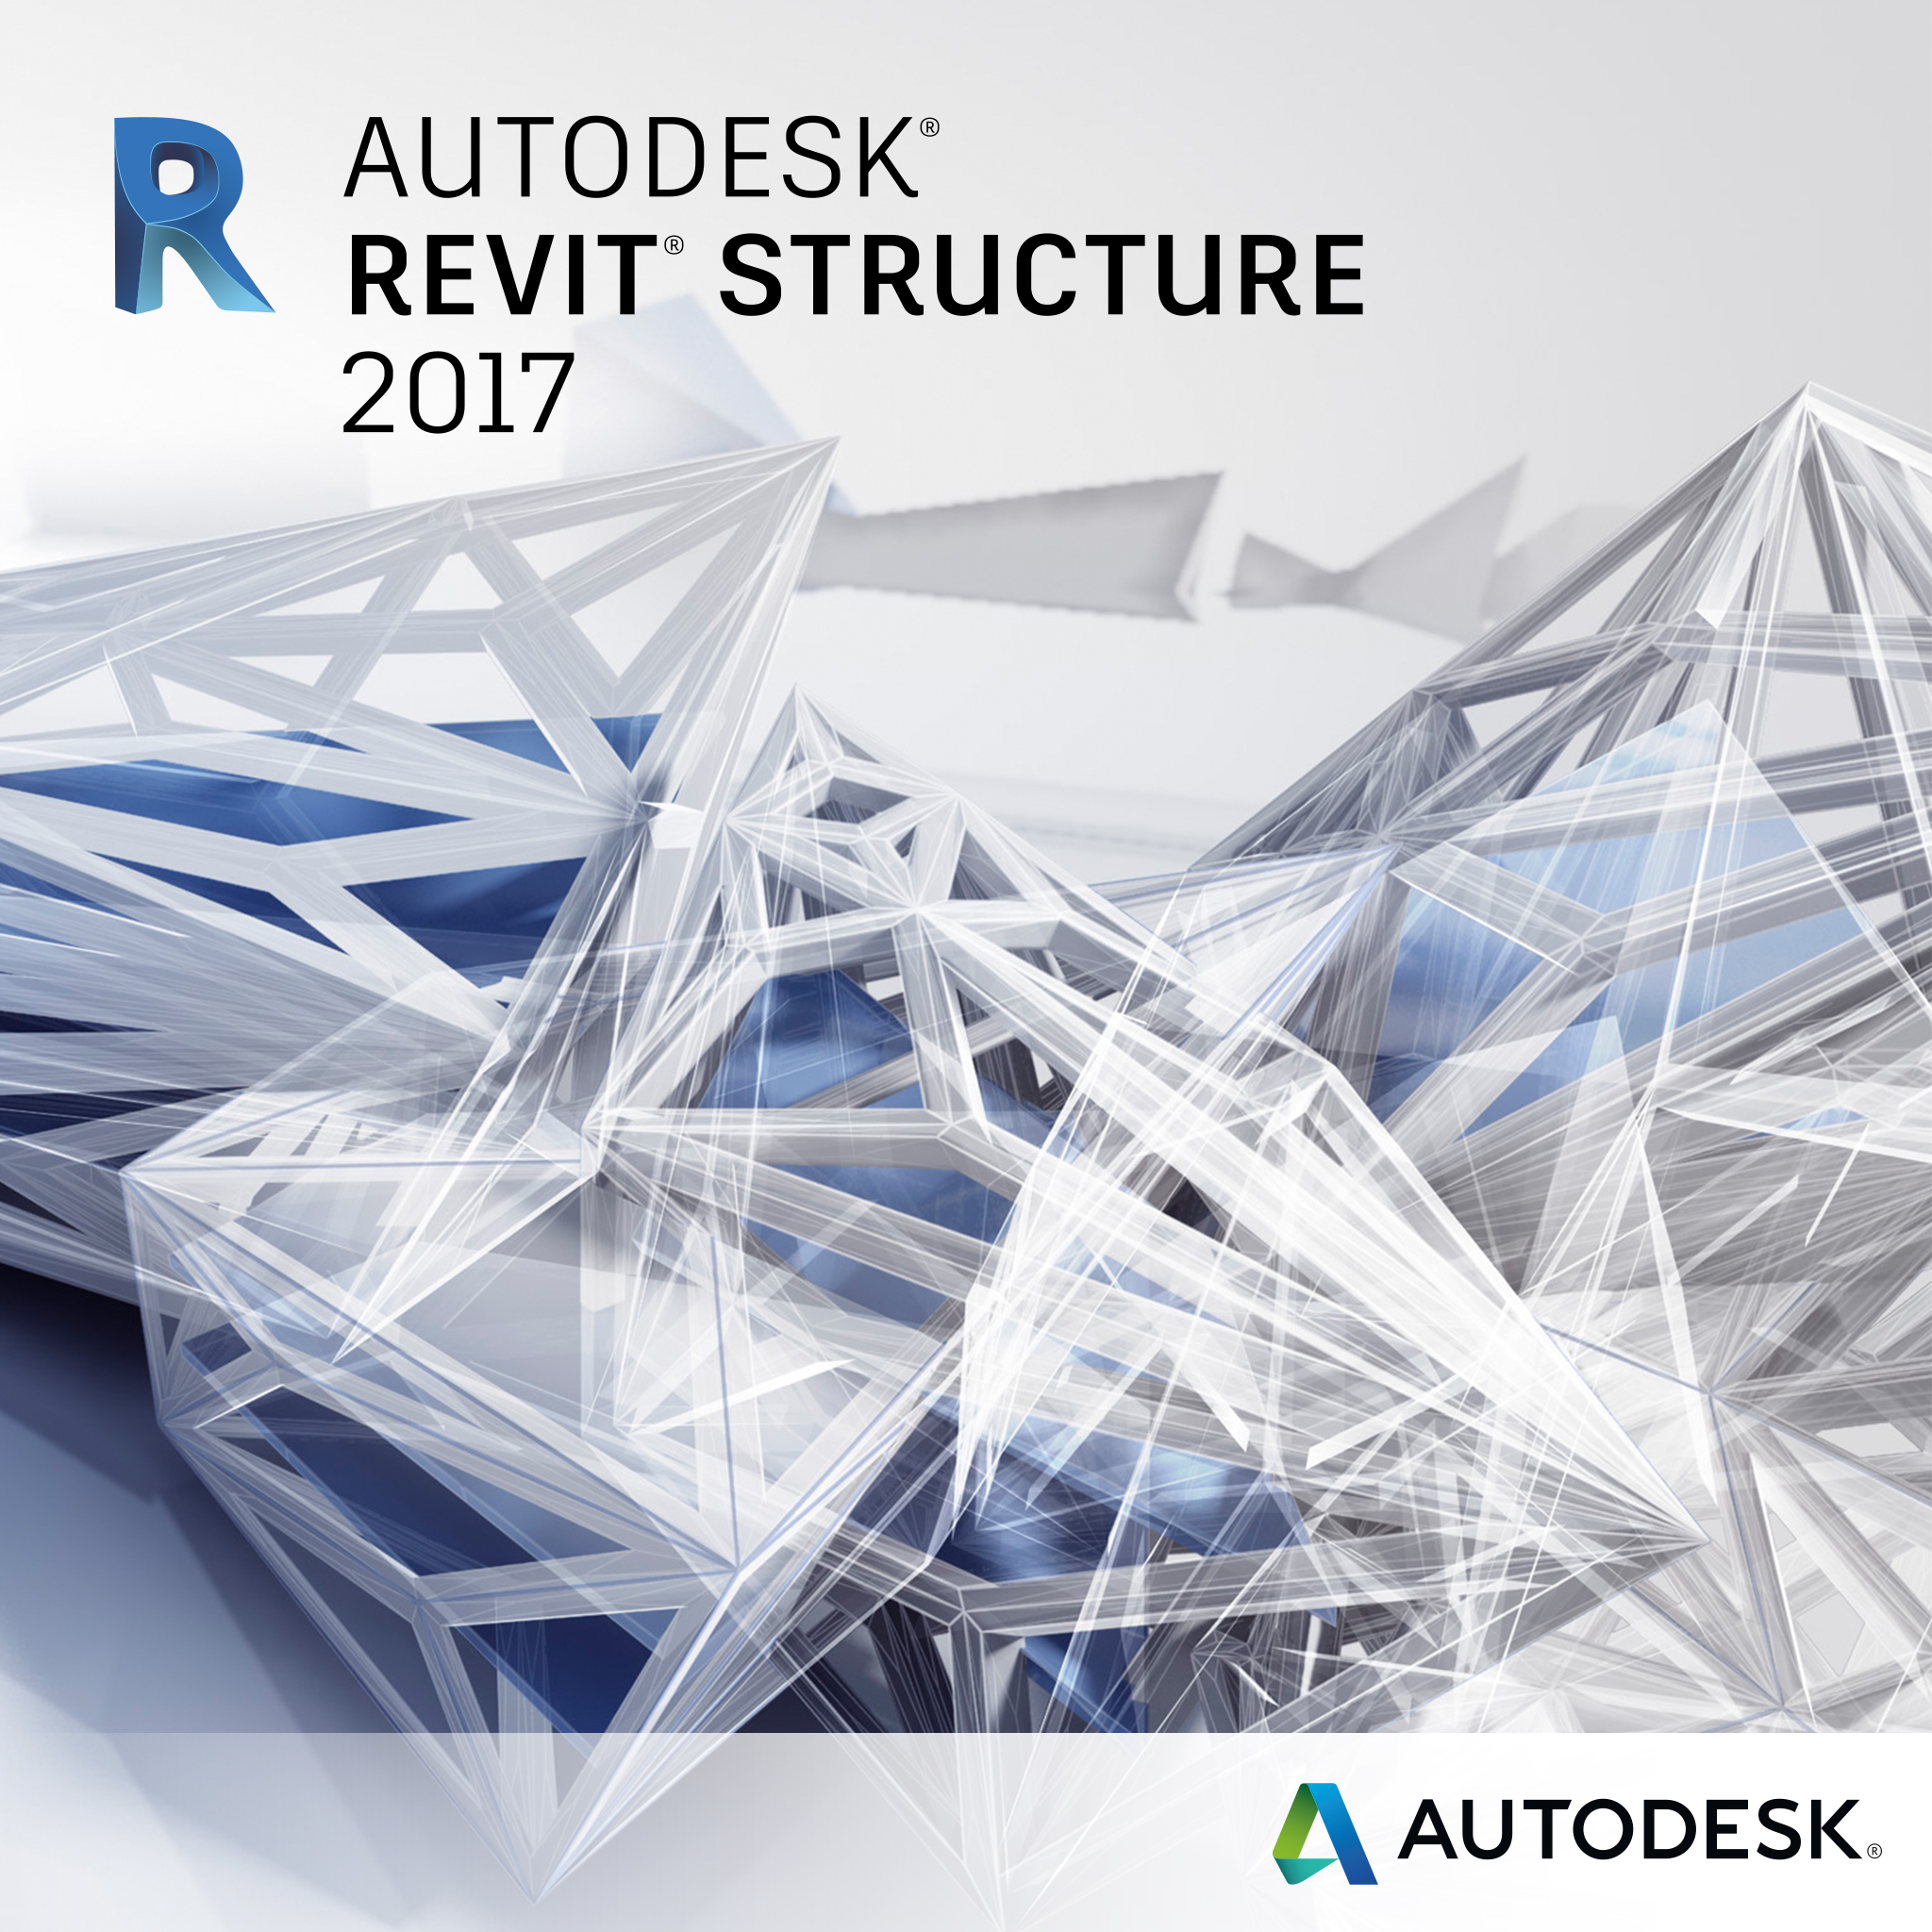 Mastering autodesk revit architecture 2017 pdf coamatho for Architecture 2017